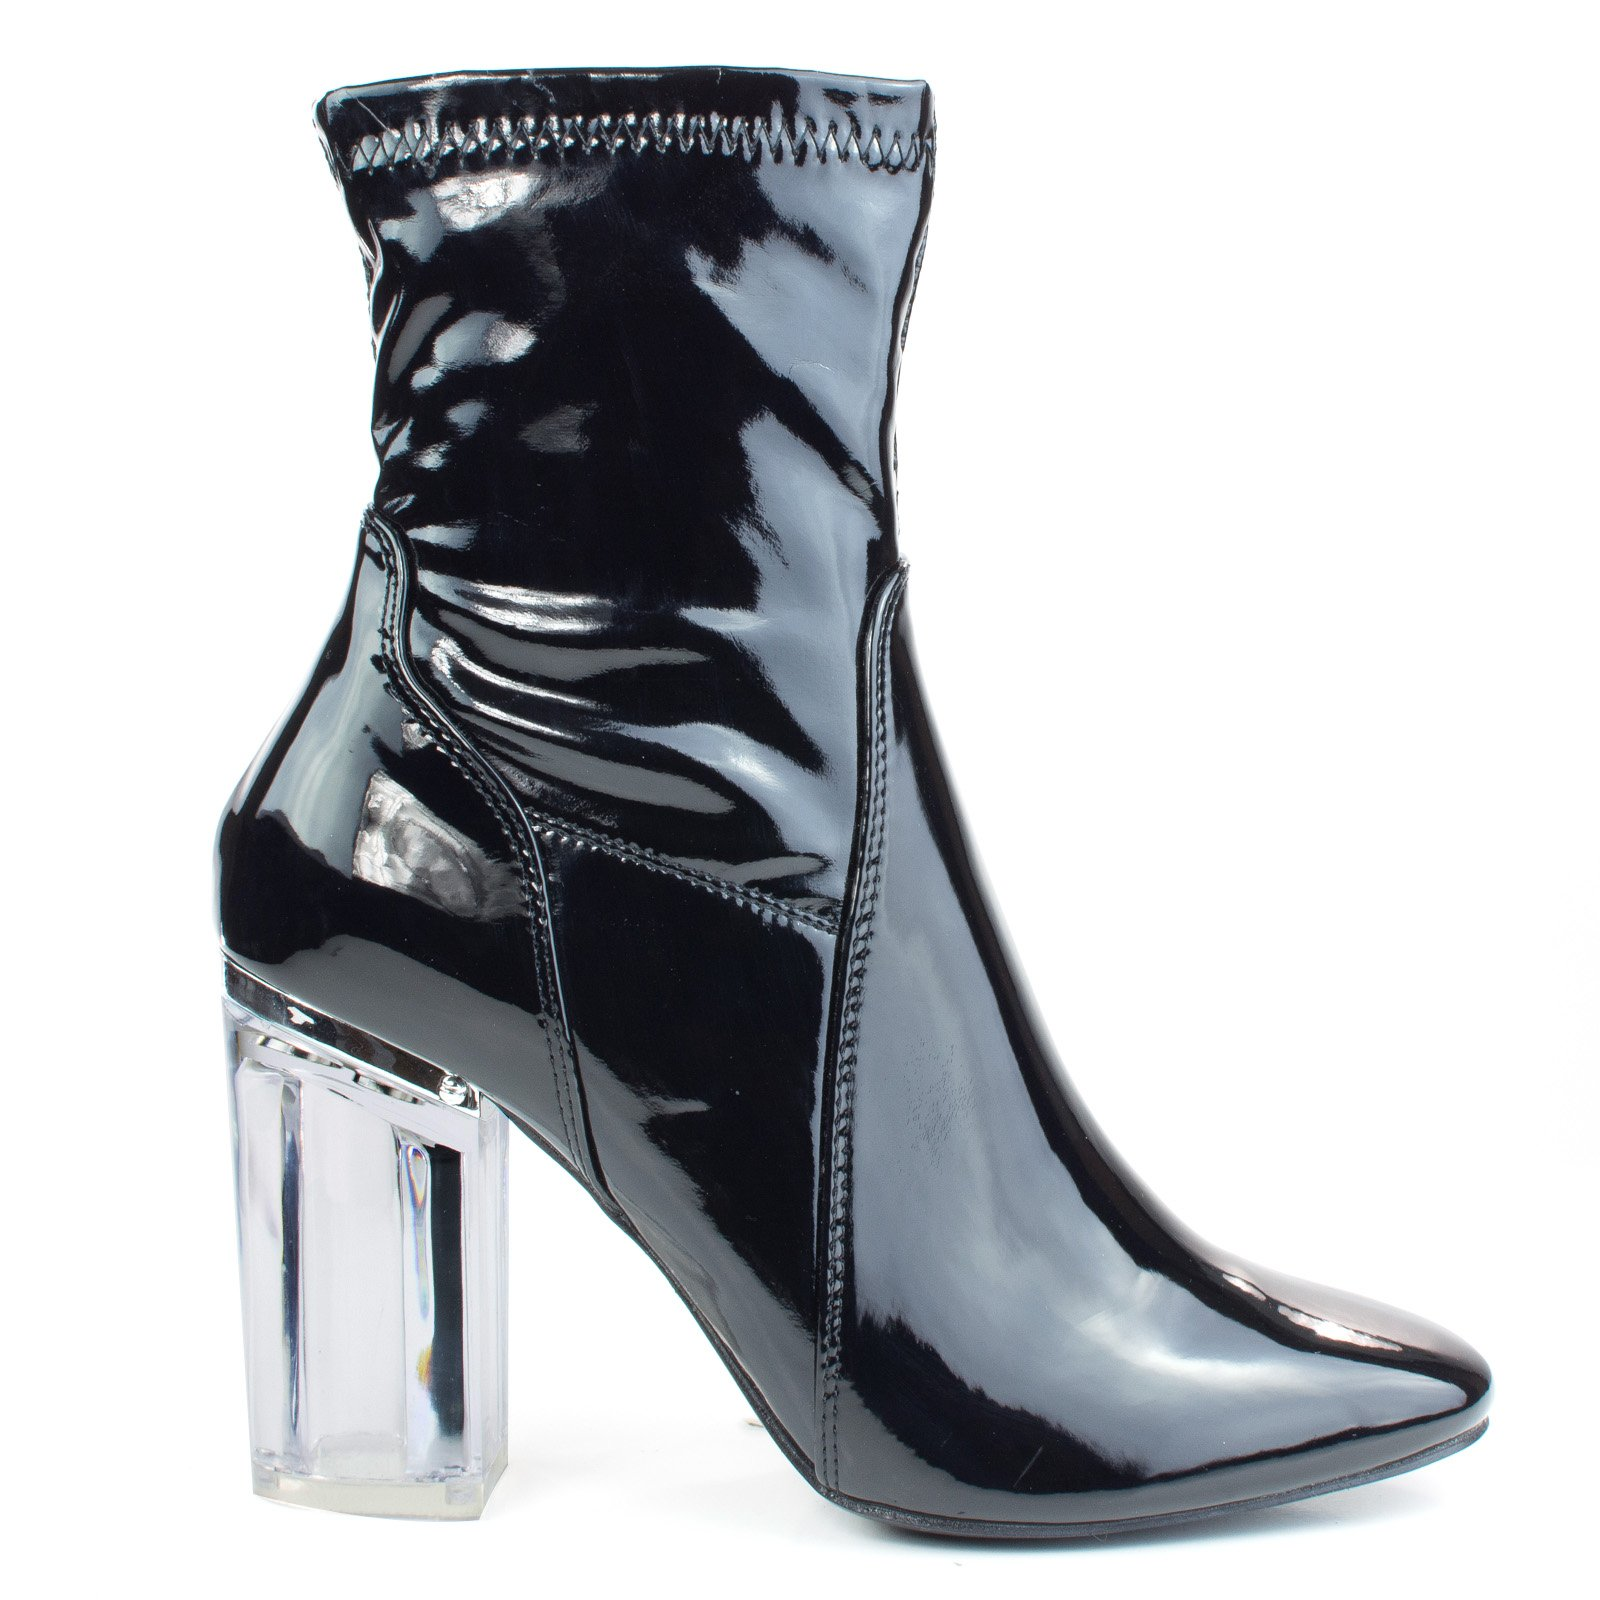 X2B Cameron3 BlackPatent Sleek Ankle Bootie Latex Patent Perspex Glass Block Heel w Pointed Toe -10